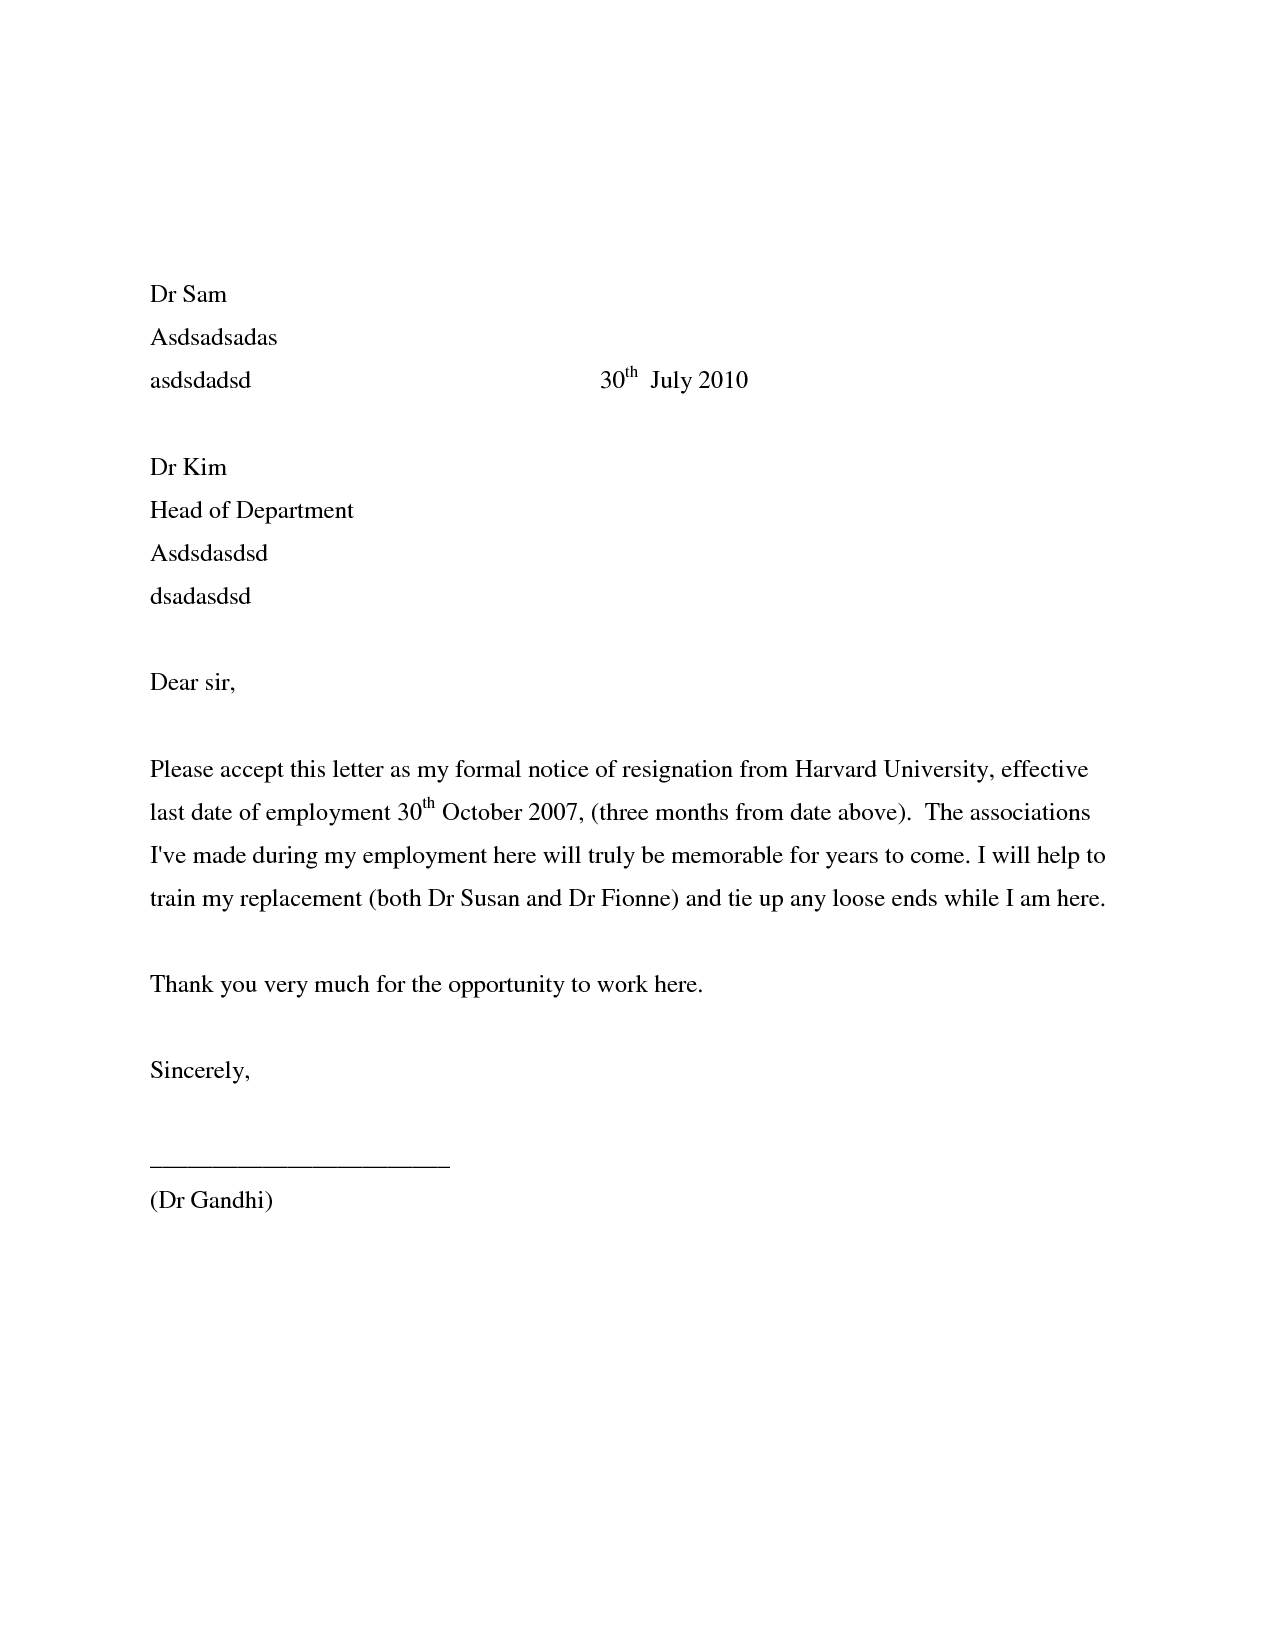 Doc Template For Termination Employment Free Notice Sample Letter